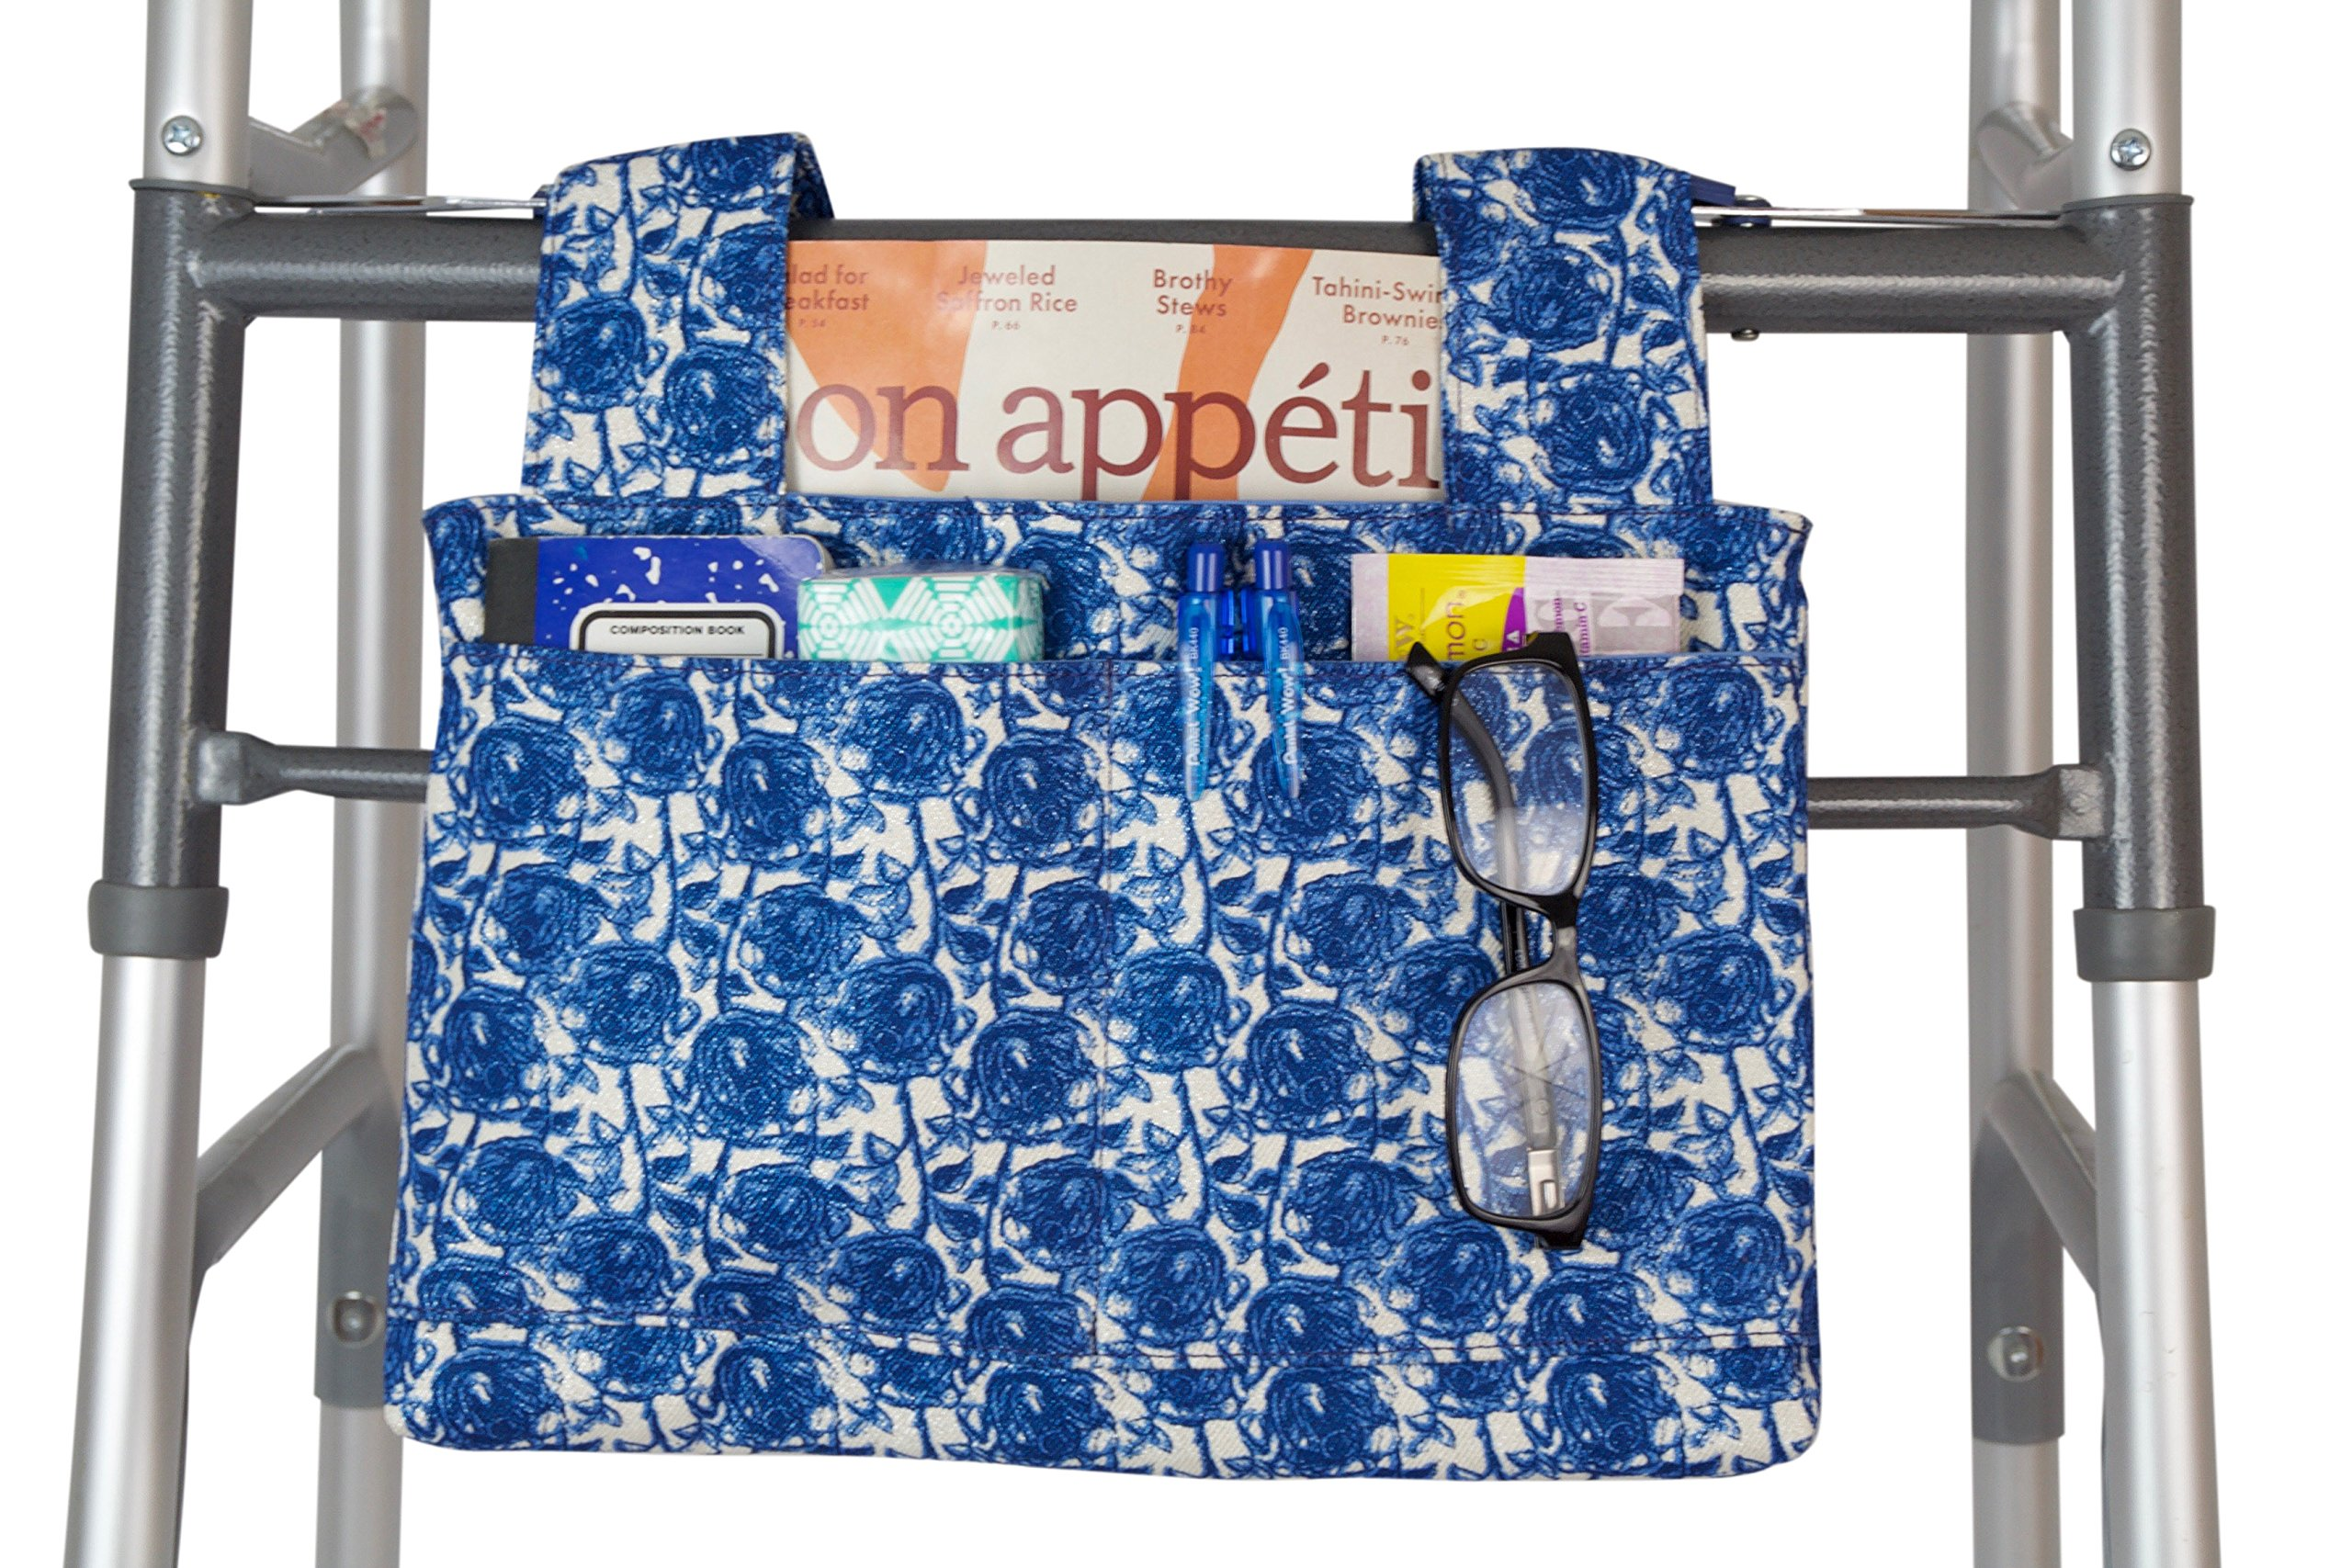 Qelse Designer Walker Bag 3-Pocket Tote Organizer Pouch FLORAL BLUE WHITE Accessories for Beautiful Mobility